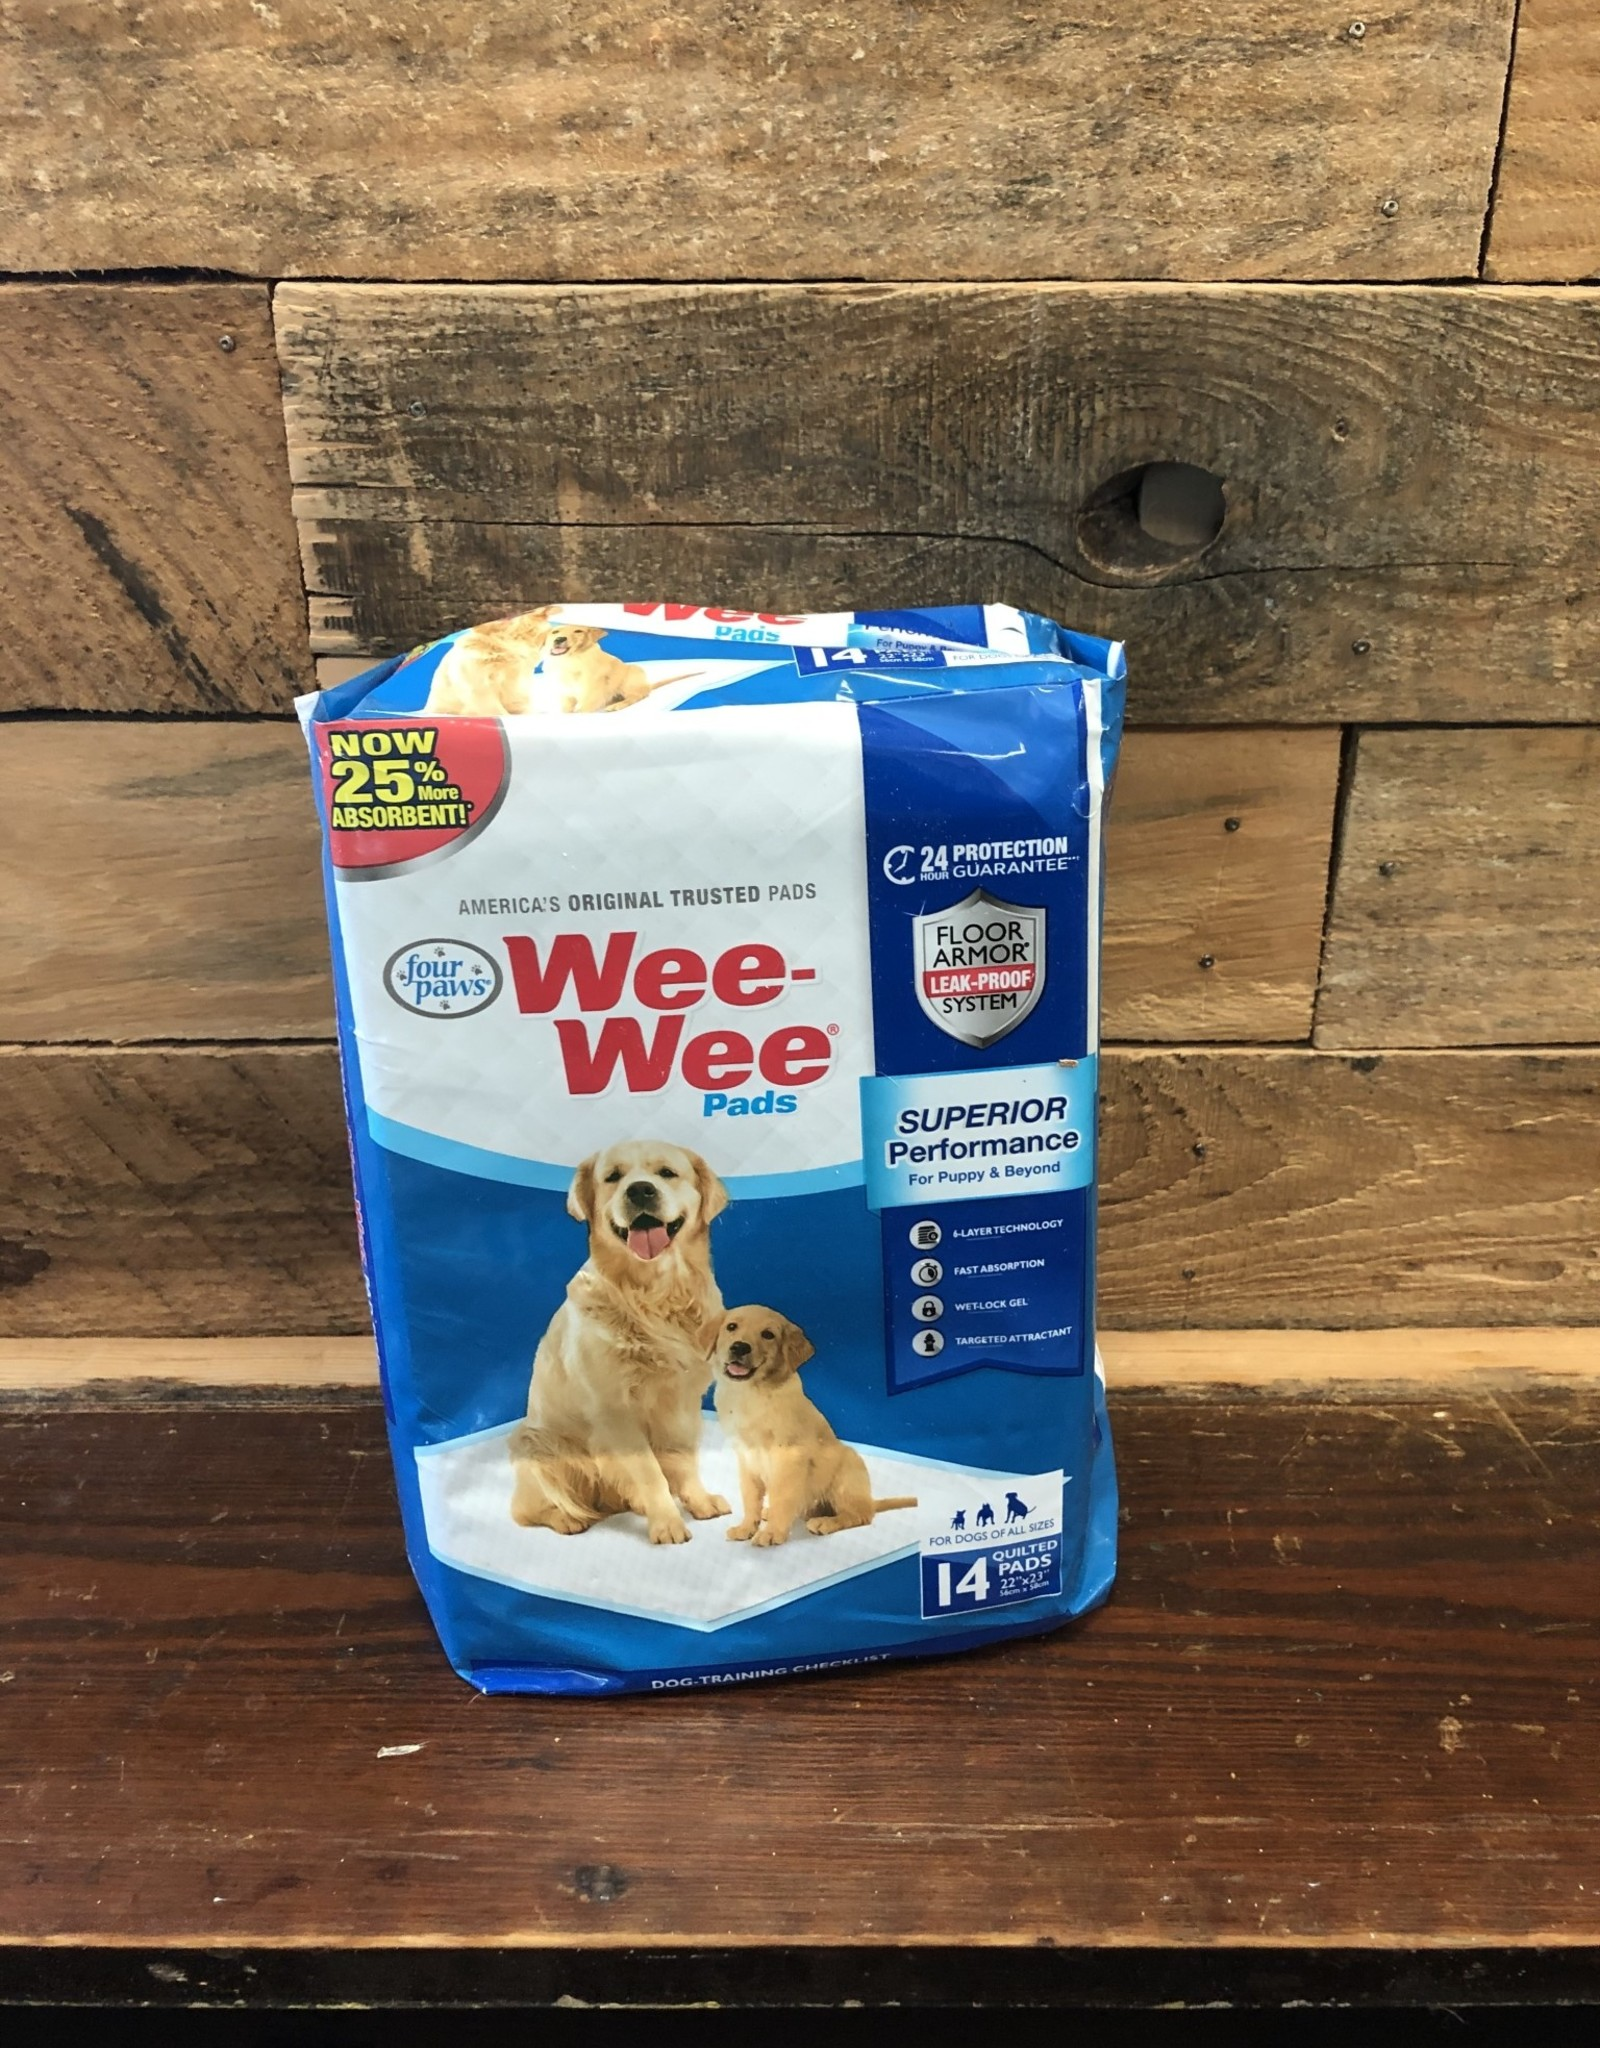 FOUR PAWS WEE-WEE PADS 14PK